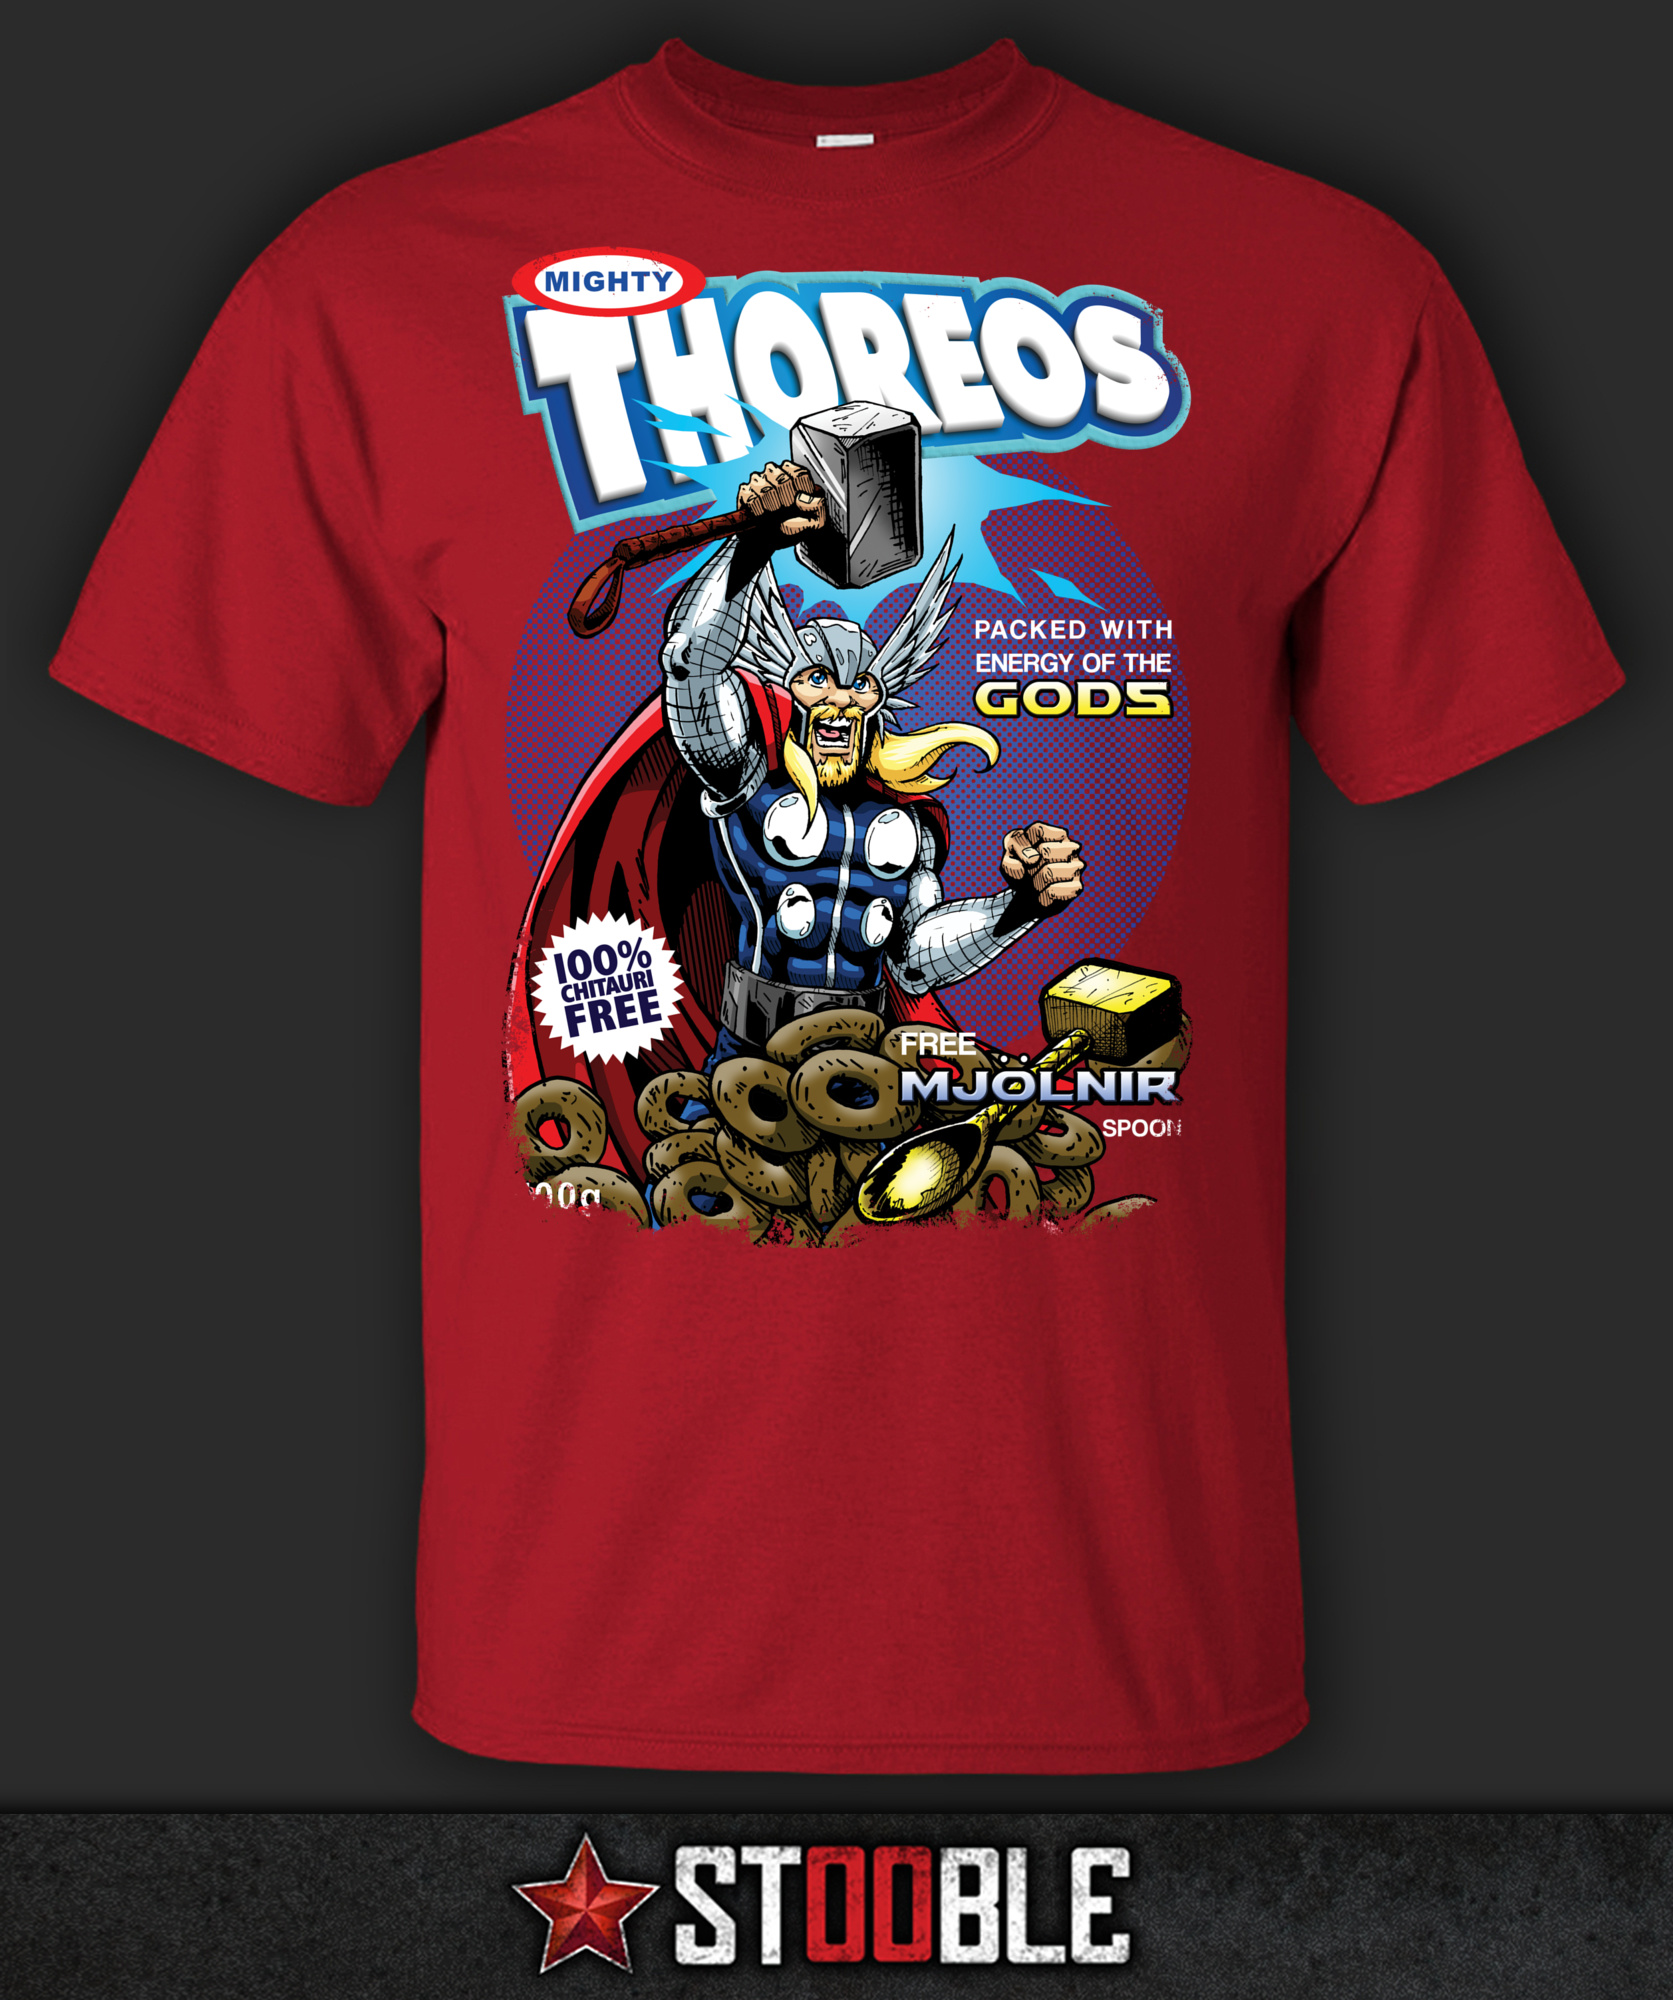 Thoreos Thor T-Shirt - New - Direct from Manufacturer